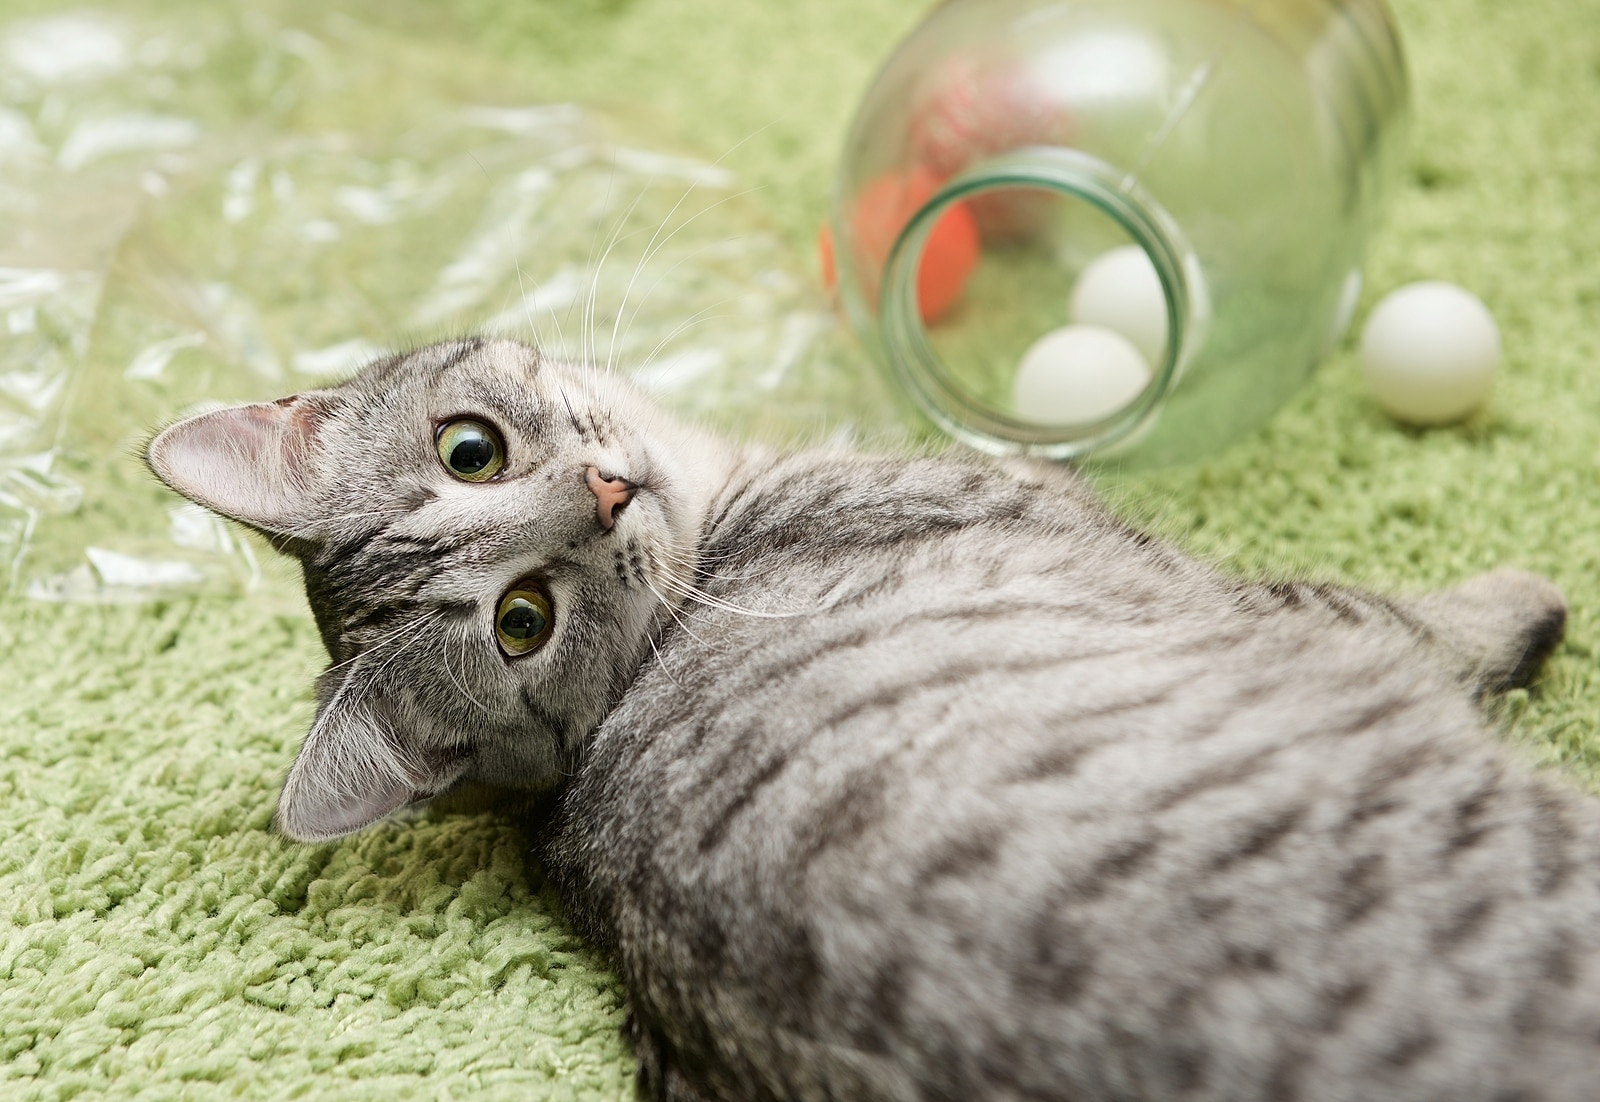 Gray cat lying on green carpet next to a jar with ping pong balls in it.